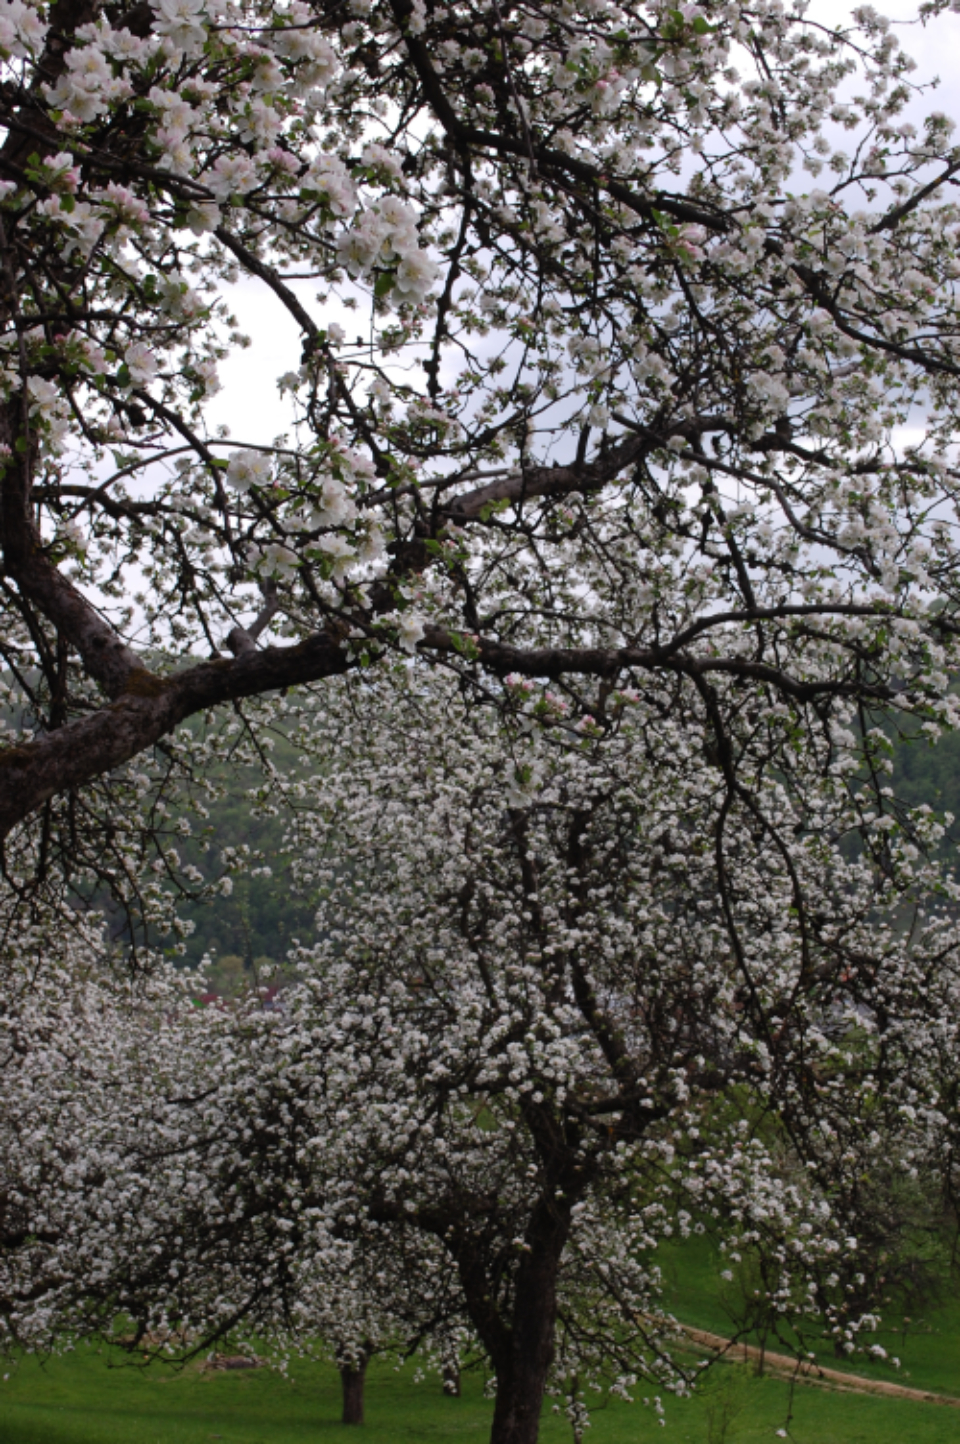 blooming tree flowers nature forest spring white petals yellow